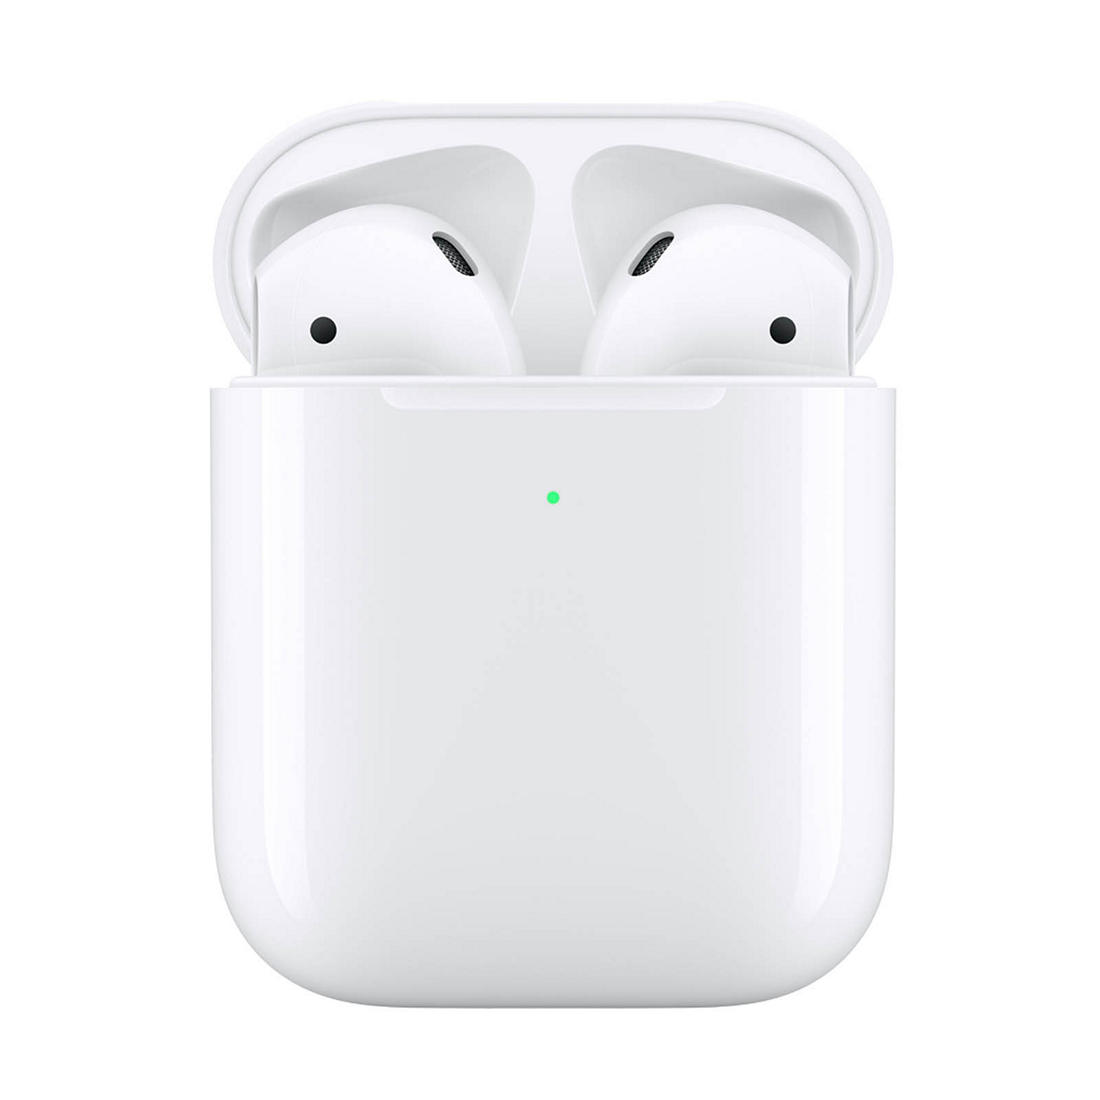 Apple Airpods Wireless Headphones With Wireless Charging Case